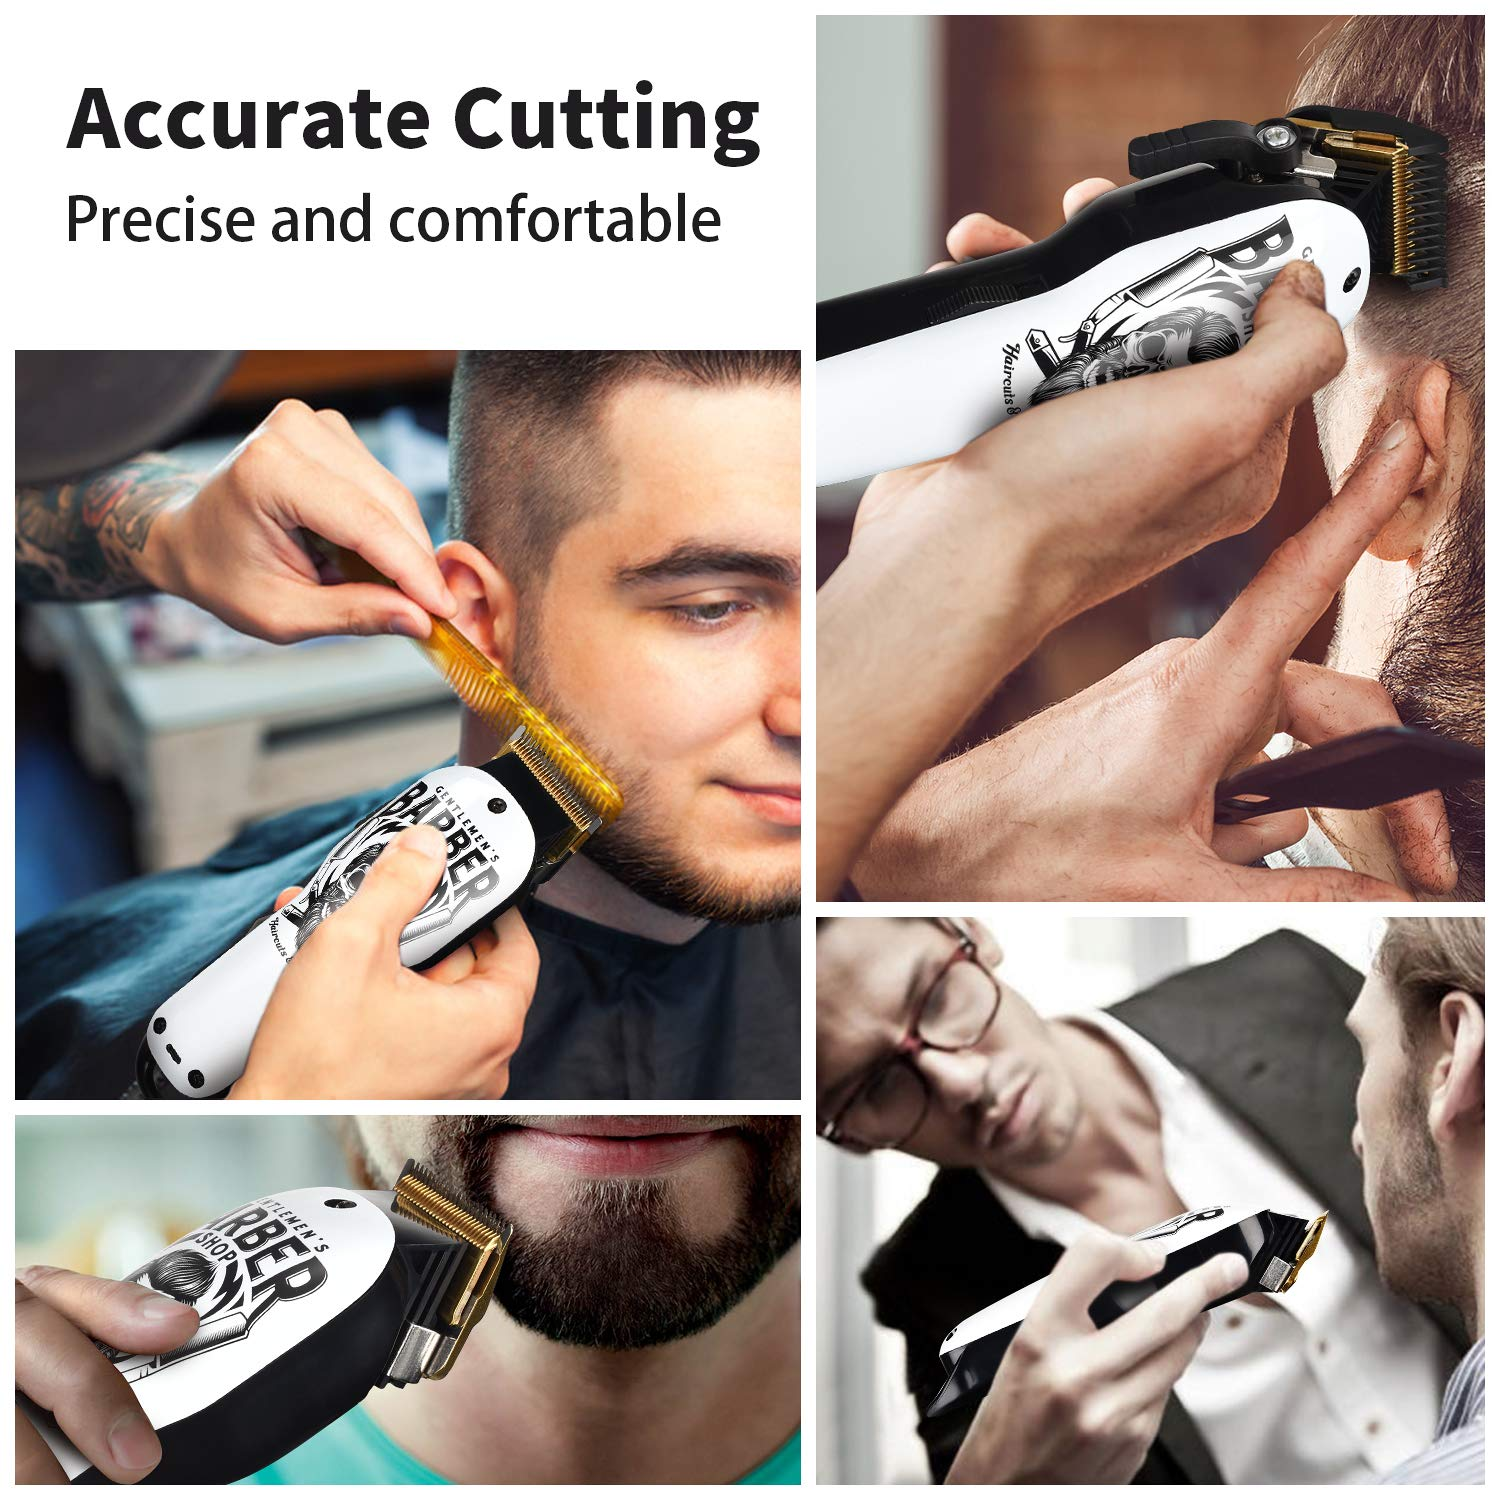 Cordless Hair Trimmer Pro Hair Clippers Beard Trimmer for Men Haircut Kit Cordless USB Rechargeable Barber Electric Shavers Hair Removal with 2000mAh Lithium Ion,Guide Combs (Trimmer)